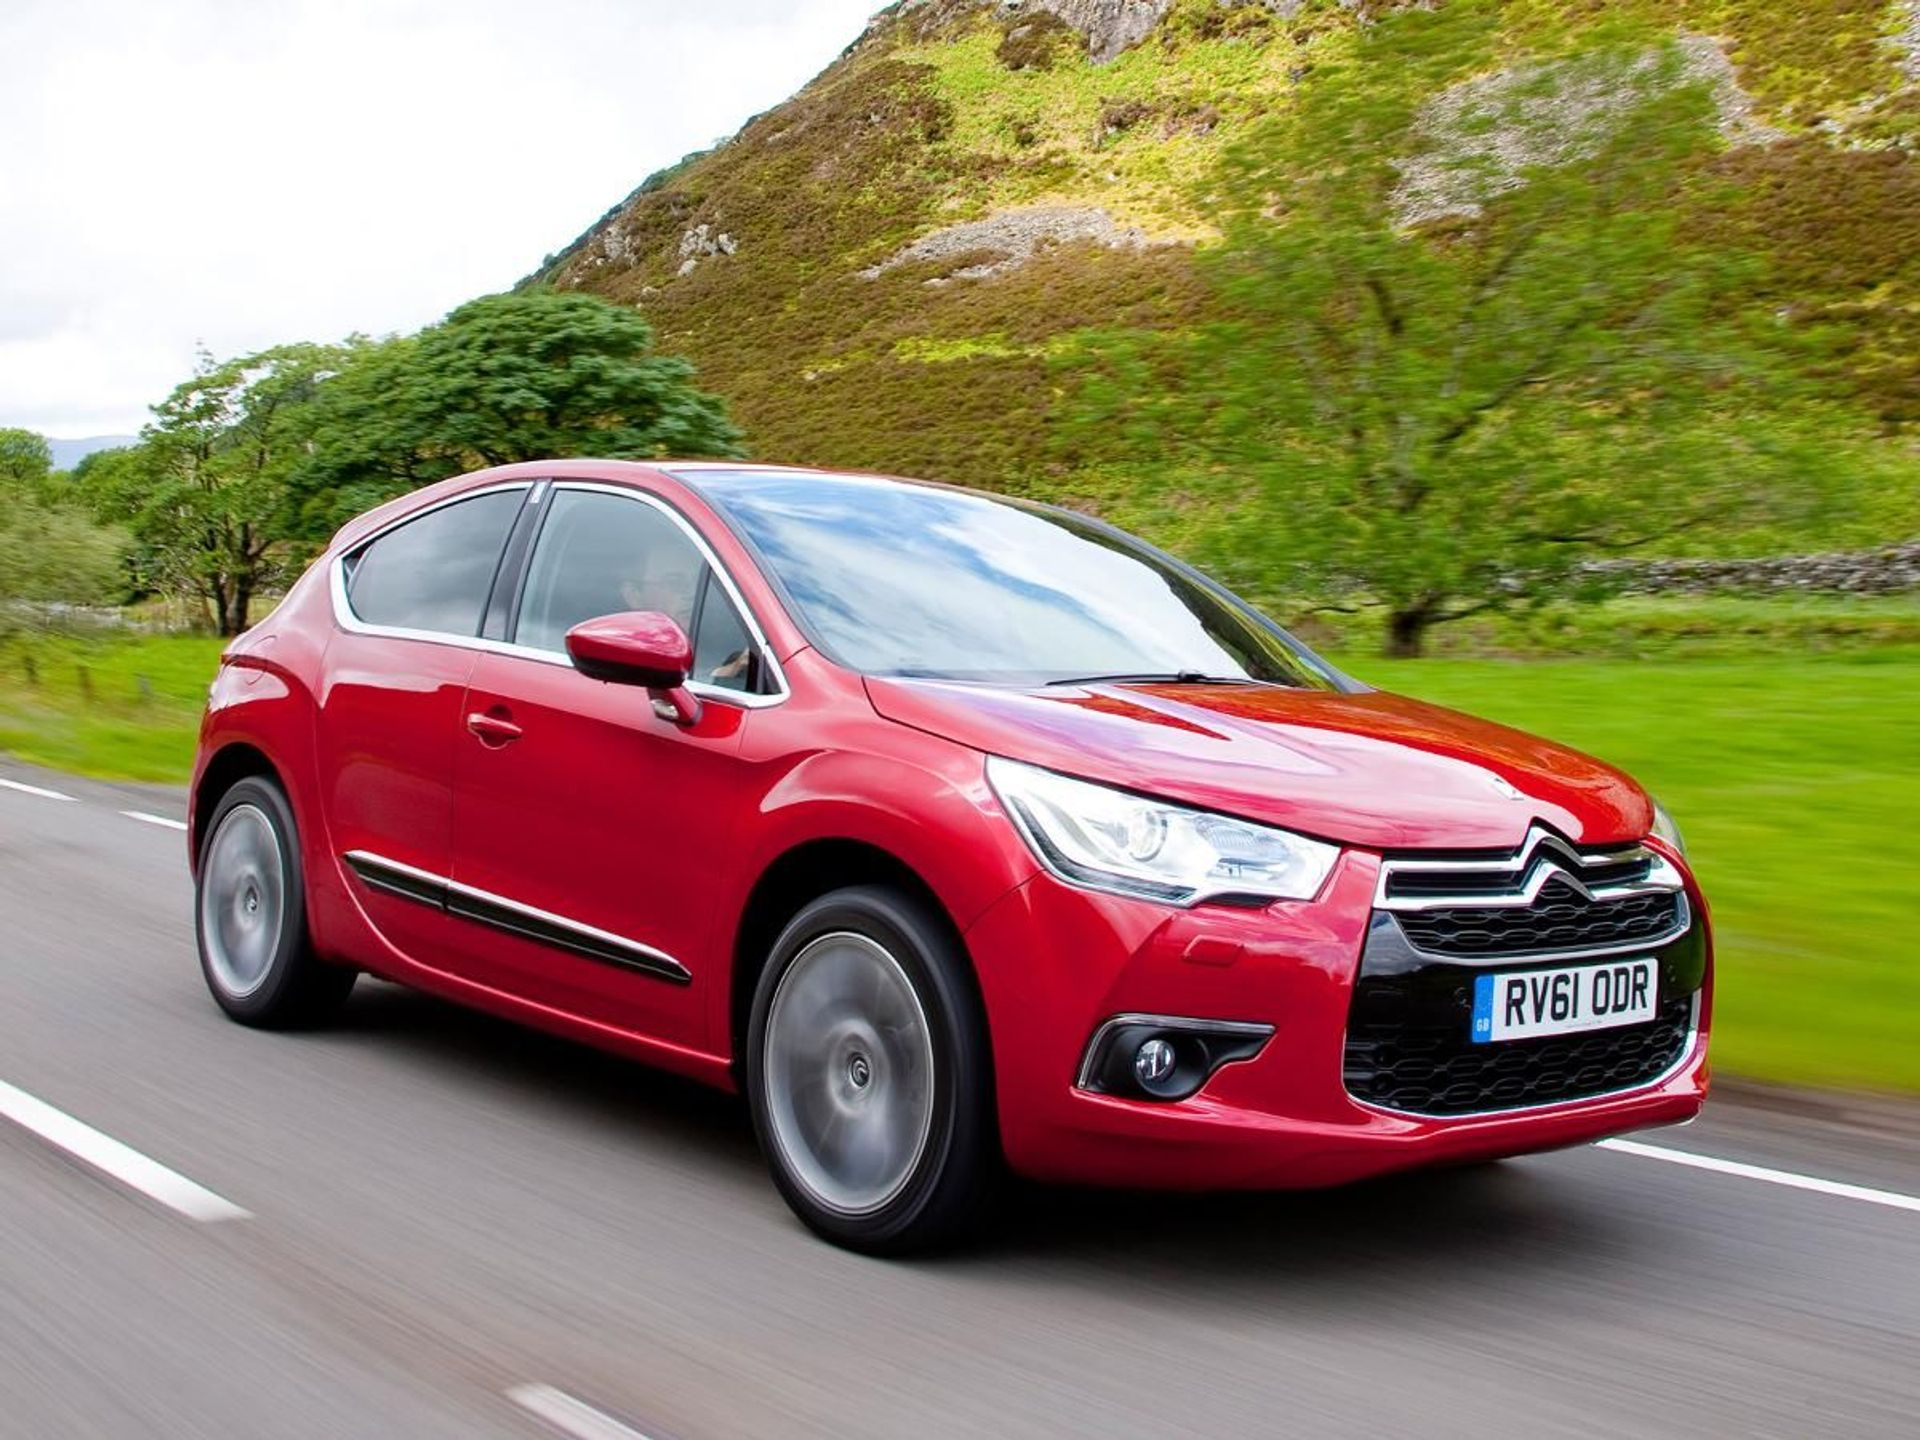 Citroen DS4 Airdream image